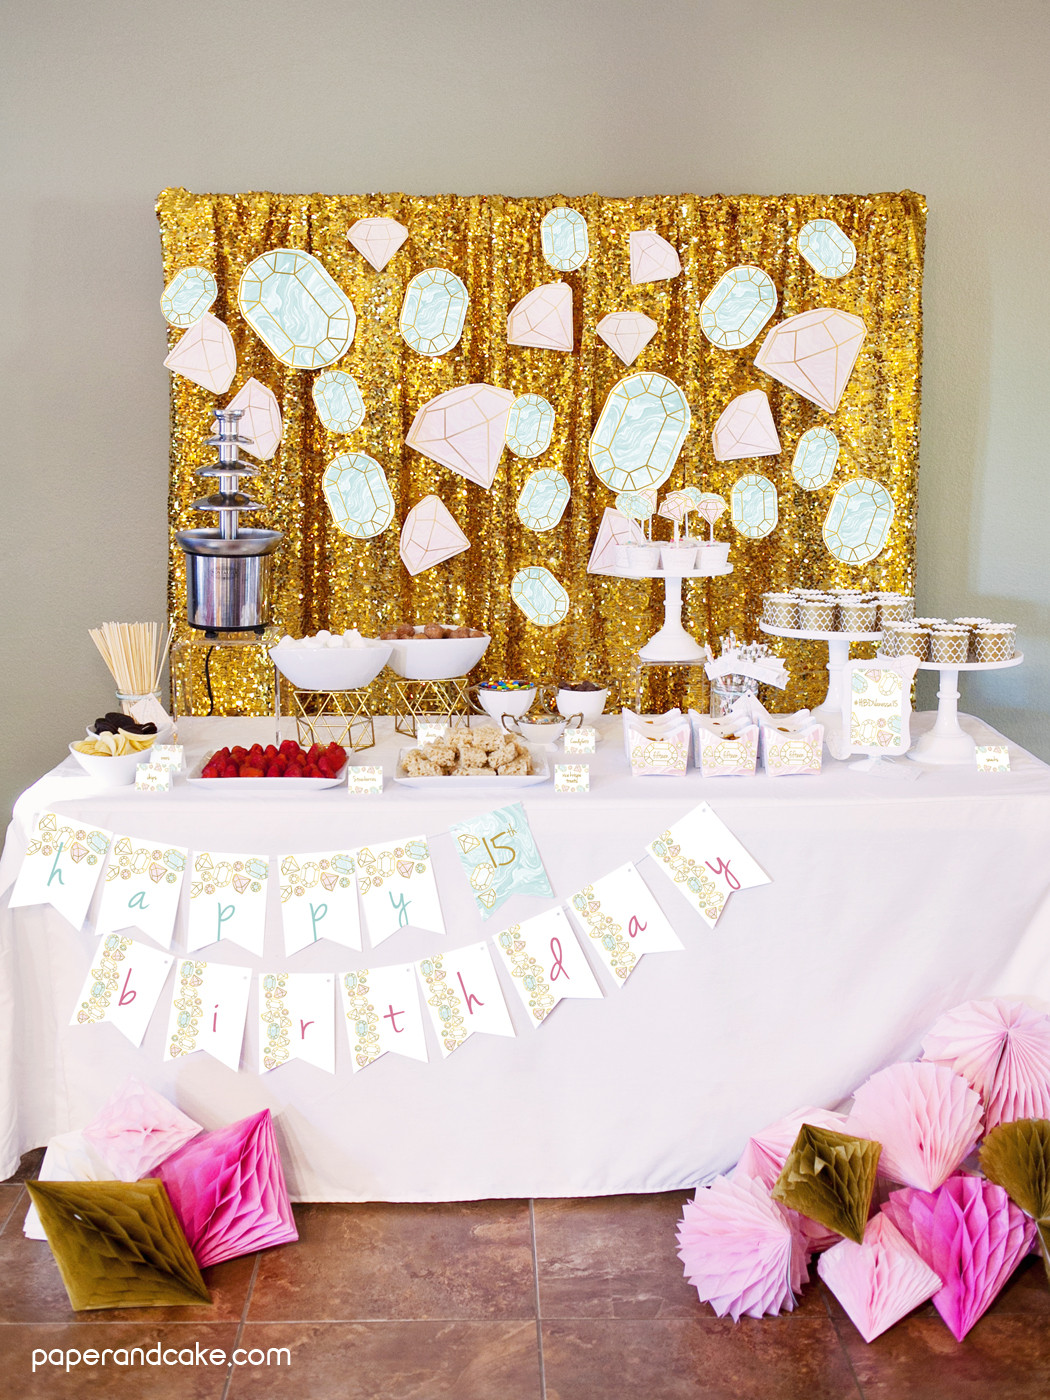 The Birthday Party  Gemstone Birthday Party Ideas Paper and Cake Paper and Cake